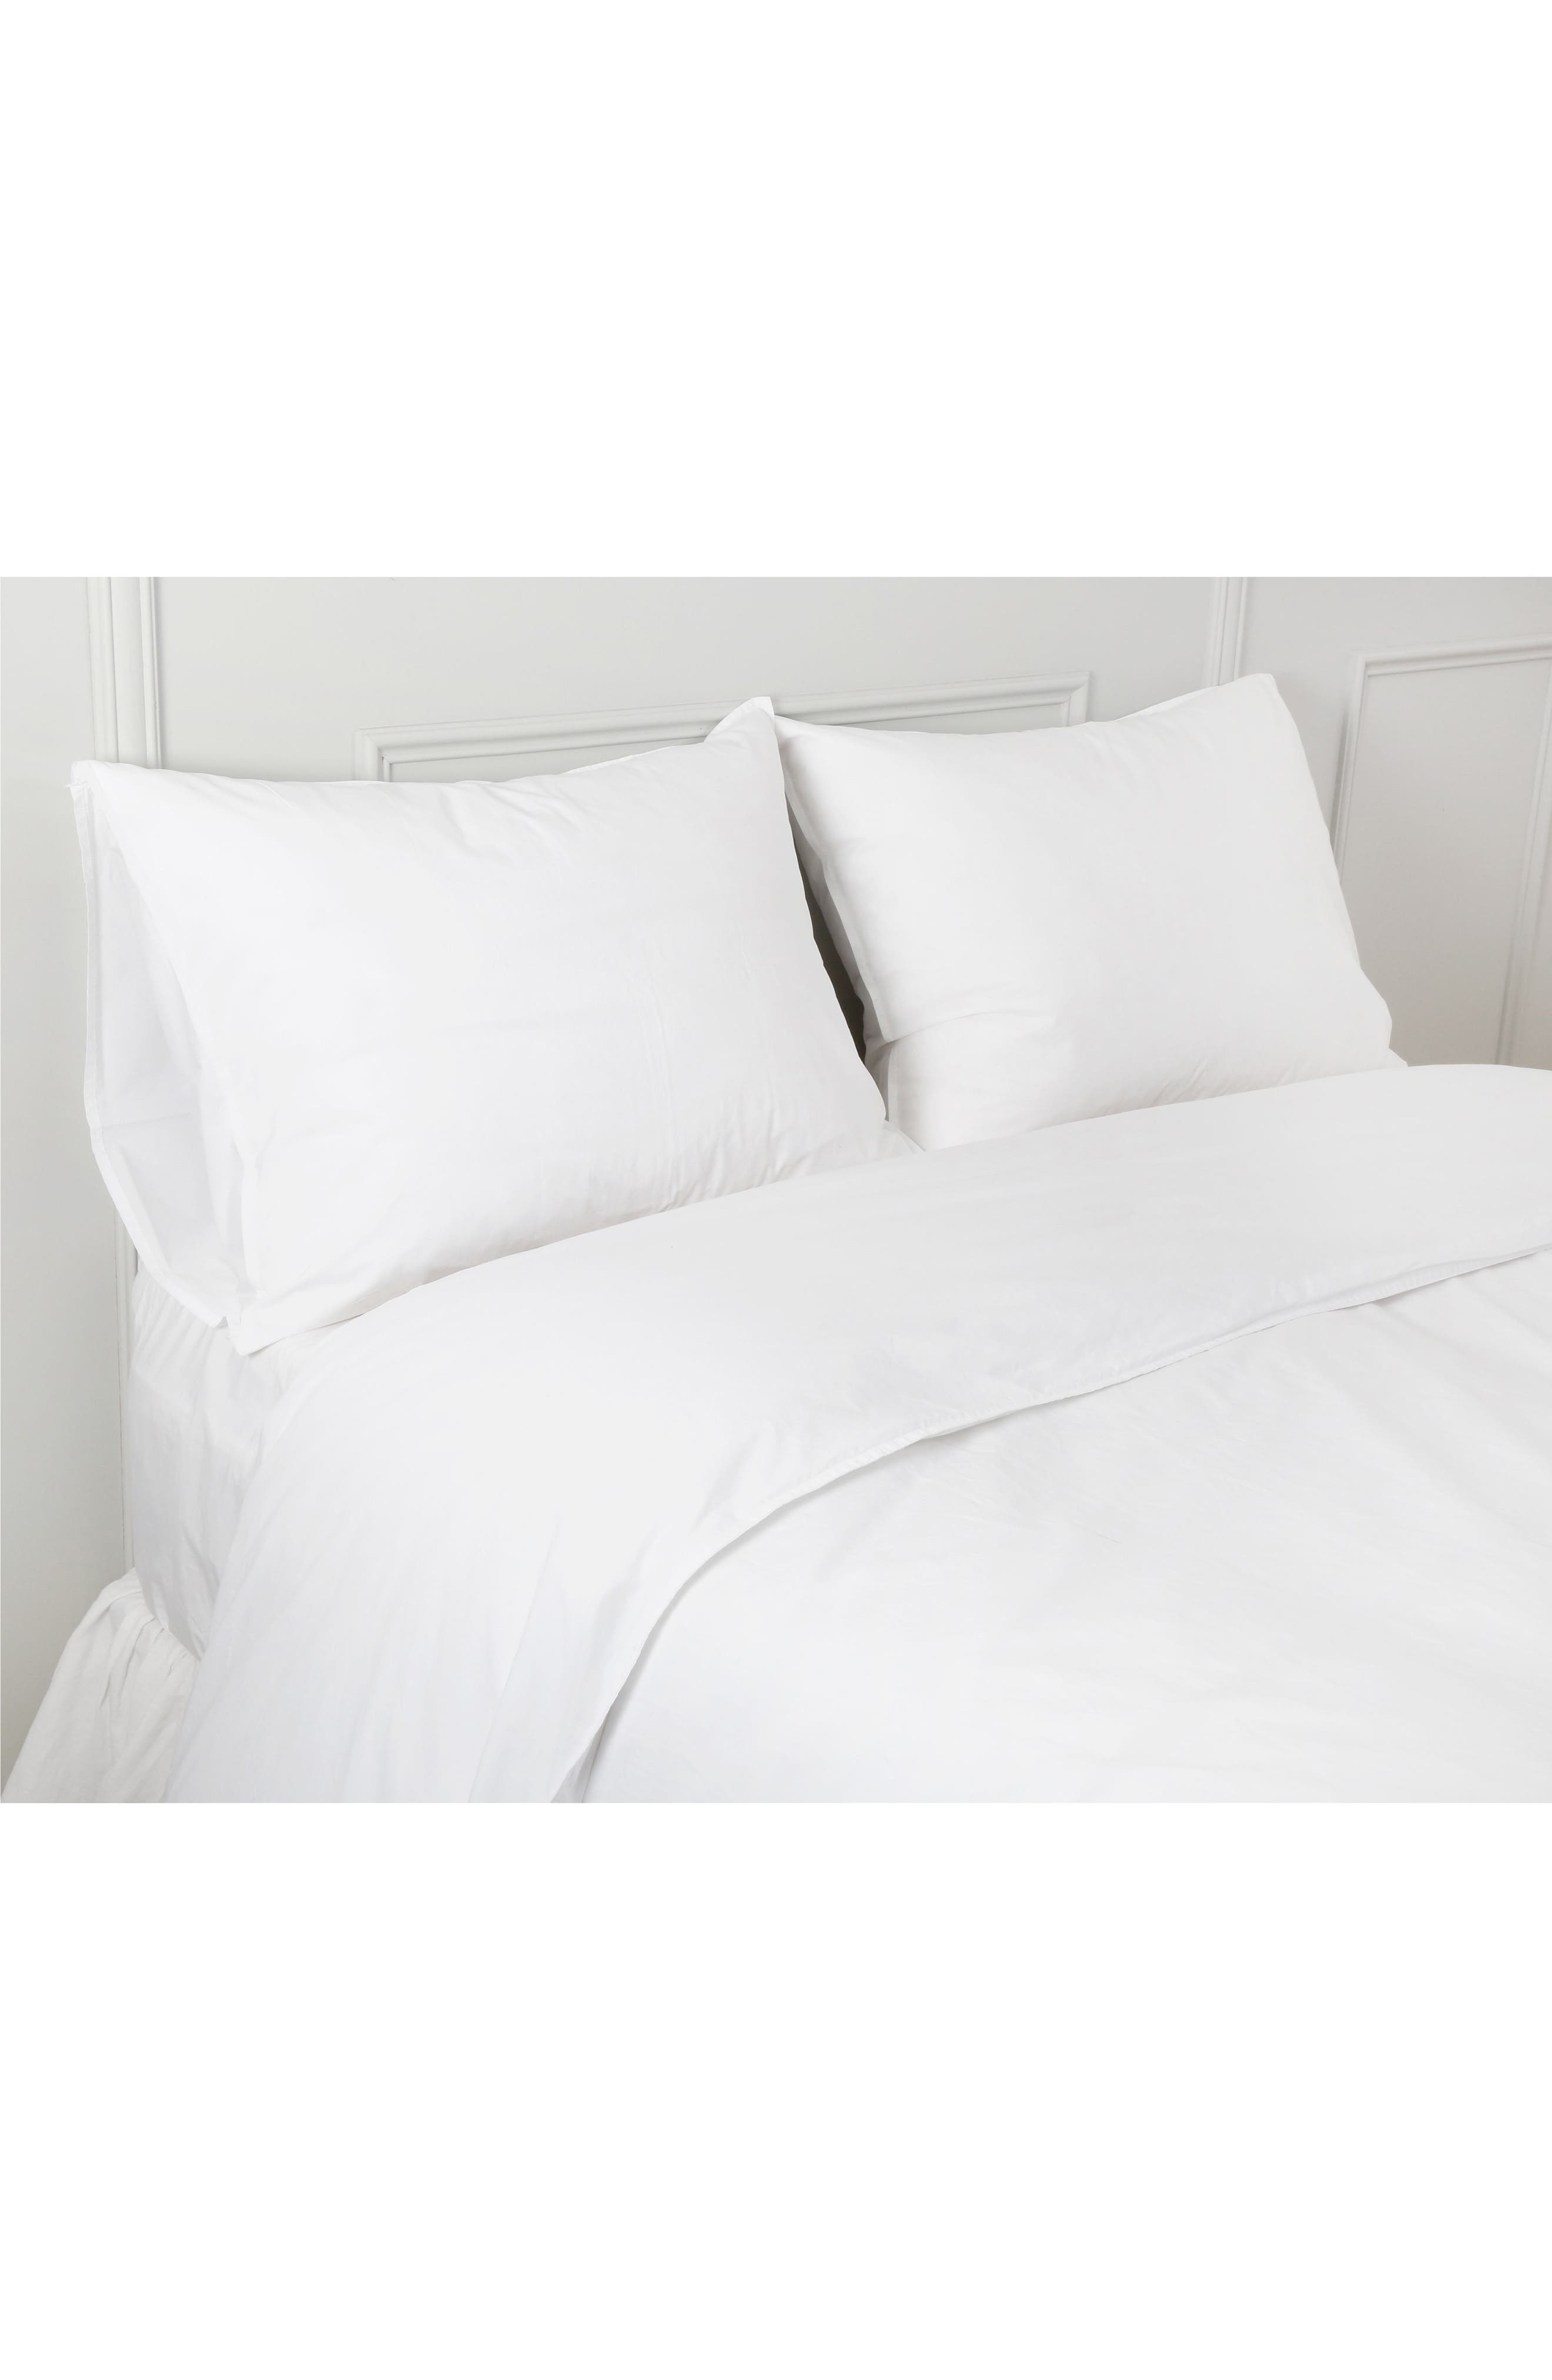 Pom Pom at Home Cotton Percale Sheet Set